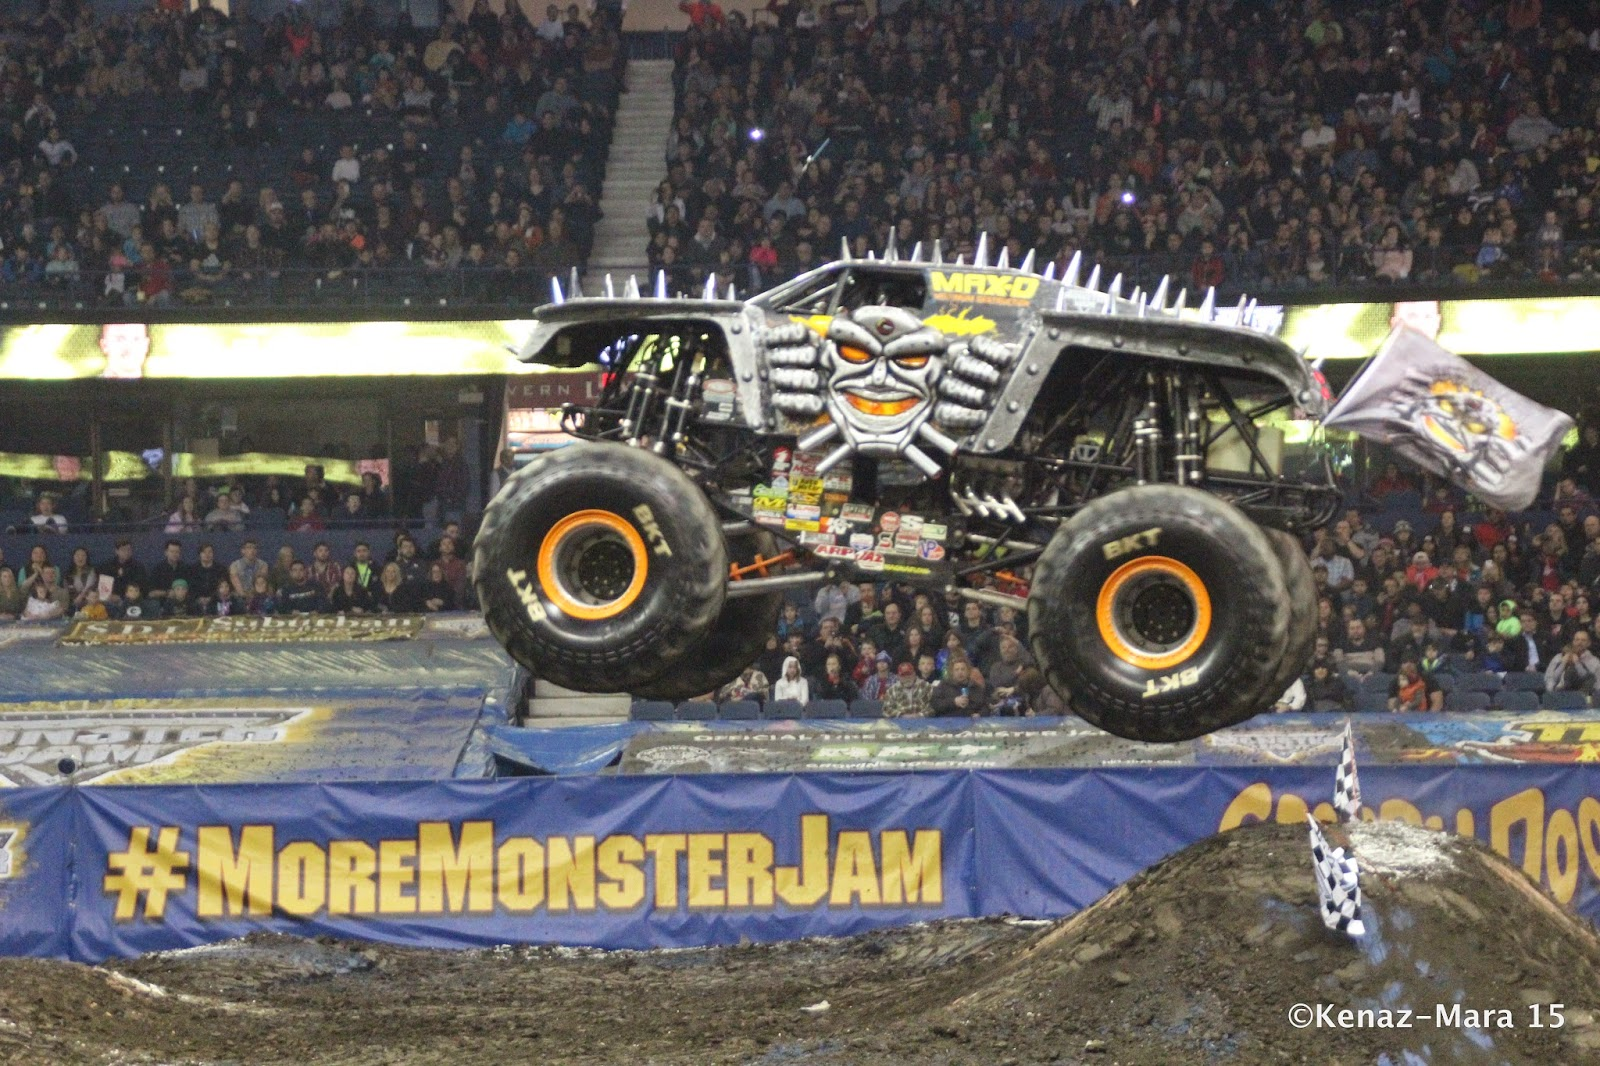 Congrats Janelle T--WINNER of 4 Monster Jam Tickets for Fri 2/12